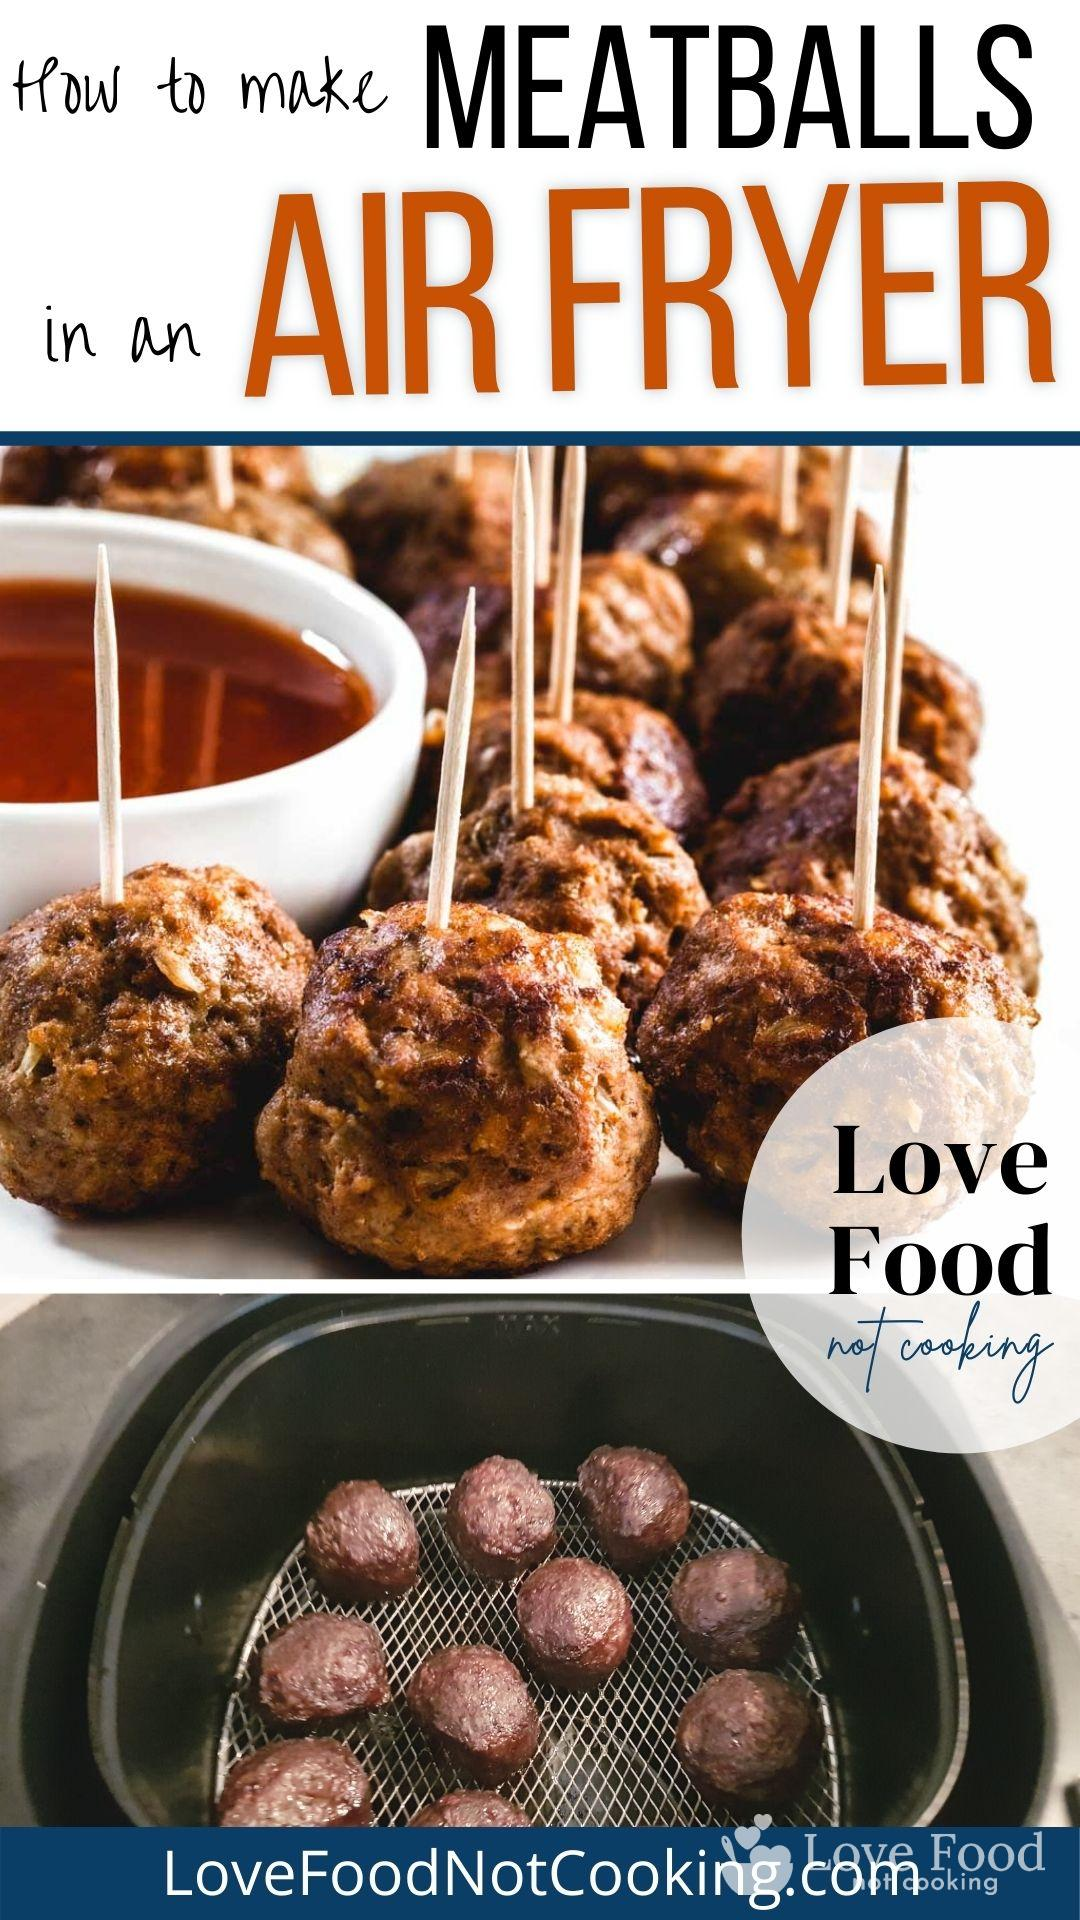 Pinterest image: photos of meatballs on a plate and in air fryer with text overlay: How to make meatballs in an air fryer.